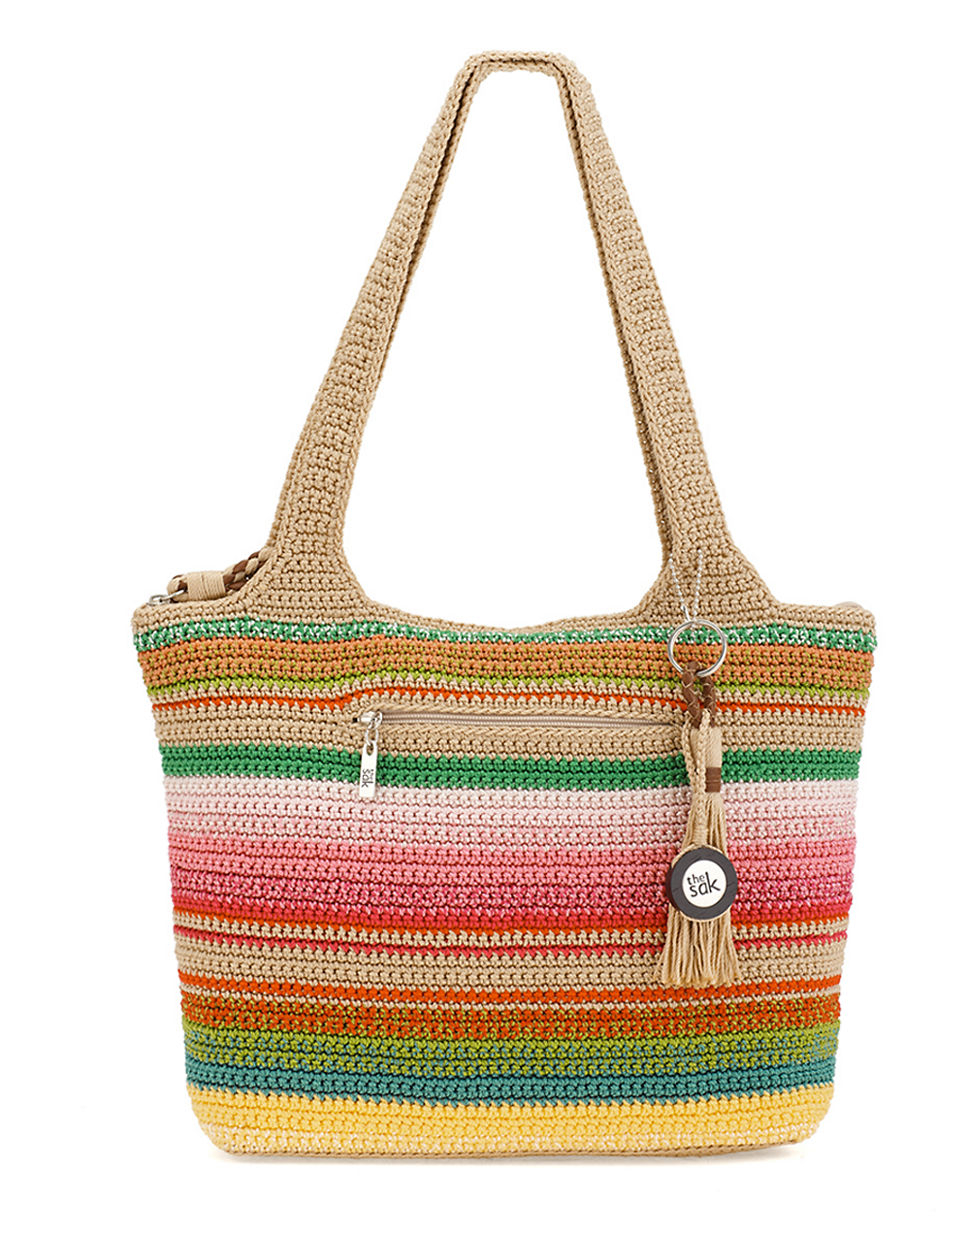 The Sak Bags Crochet : The Sak Crocheted Purse in Multicolor (PLAYA STRIPE) Lyst